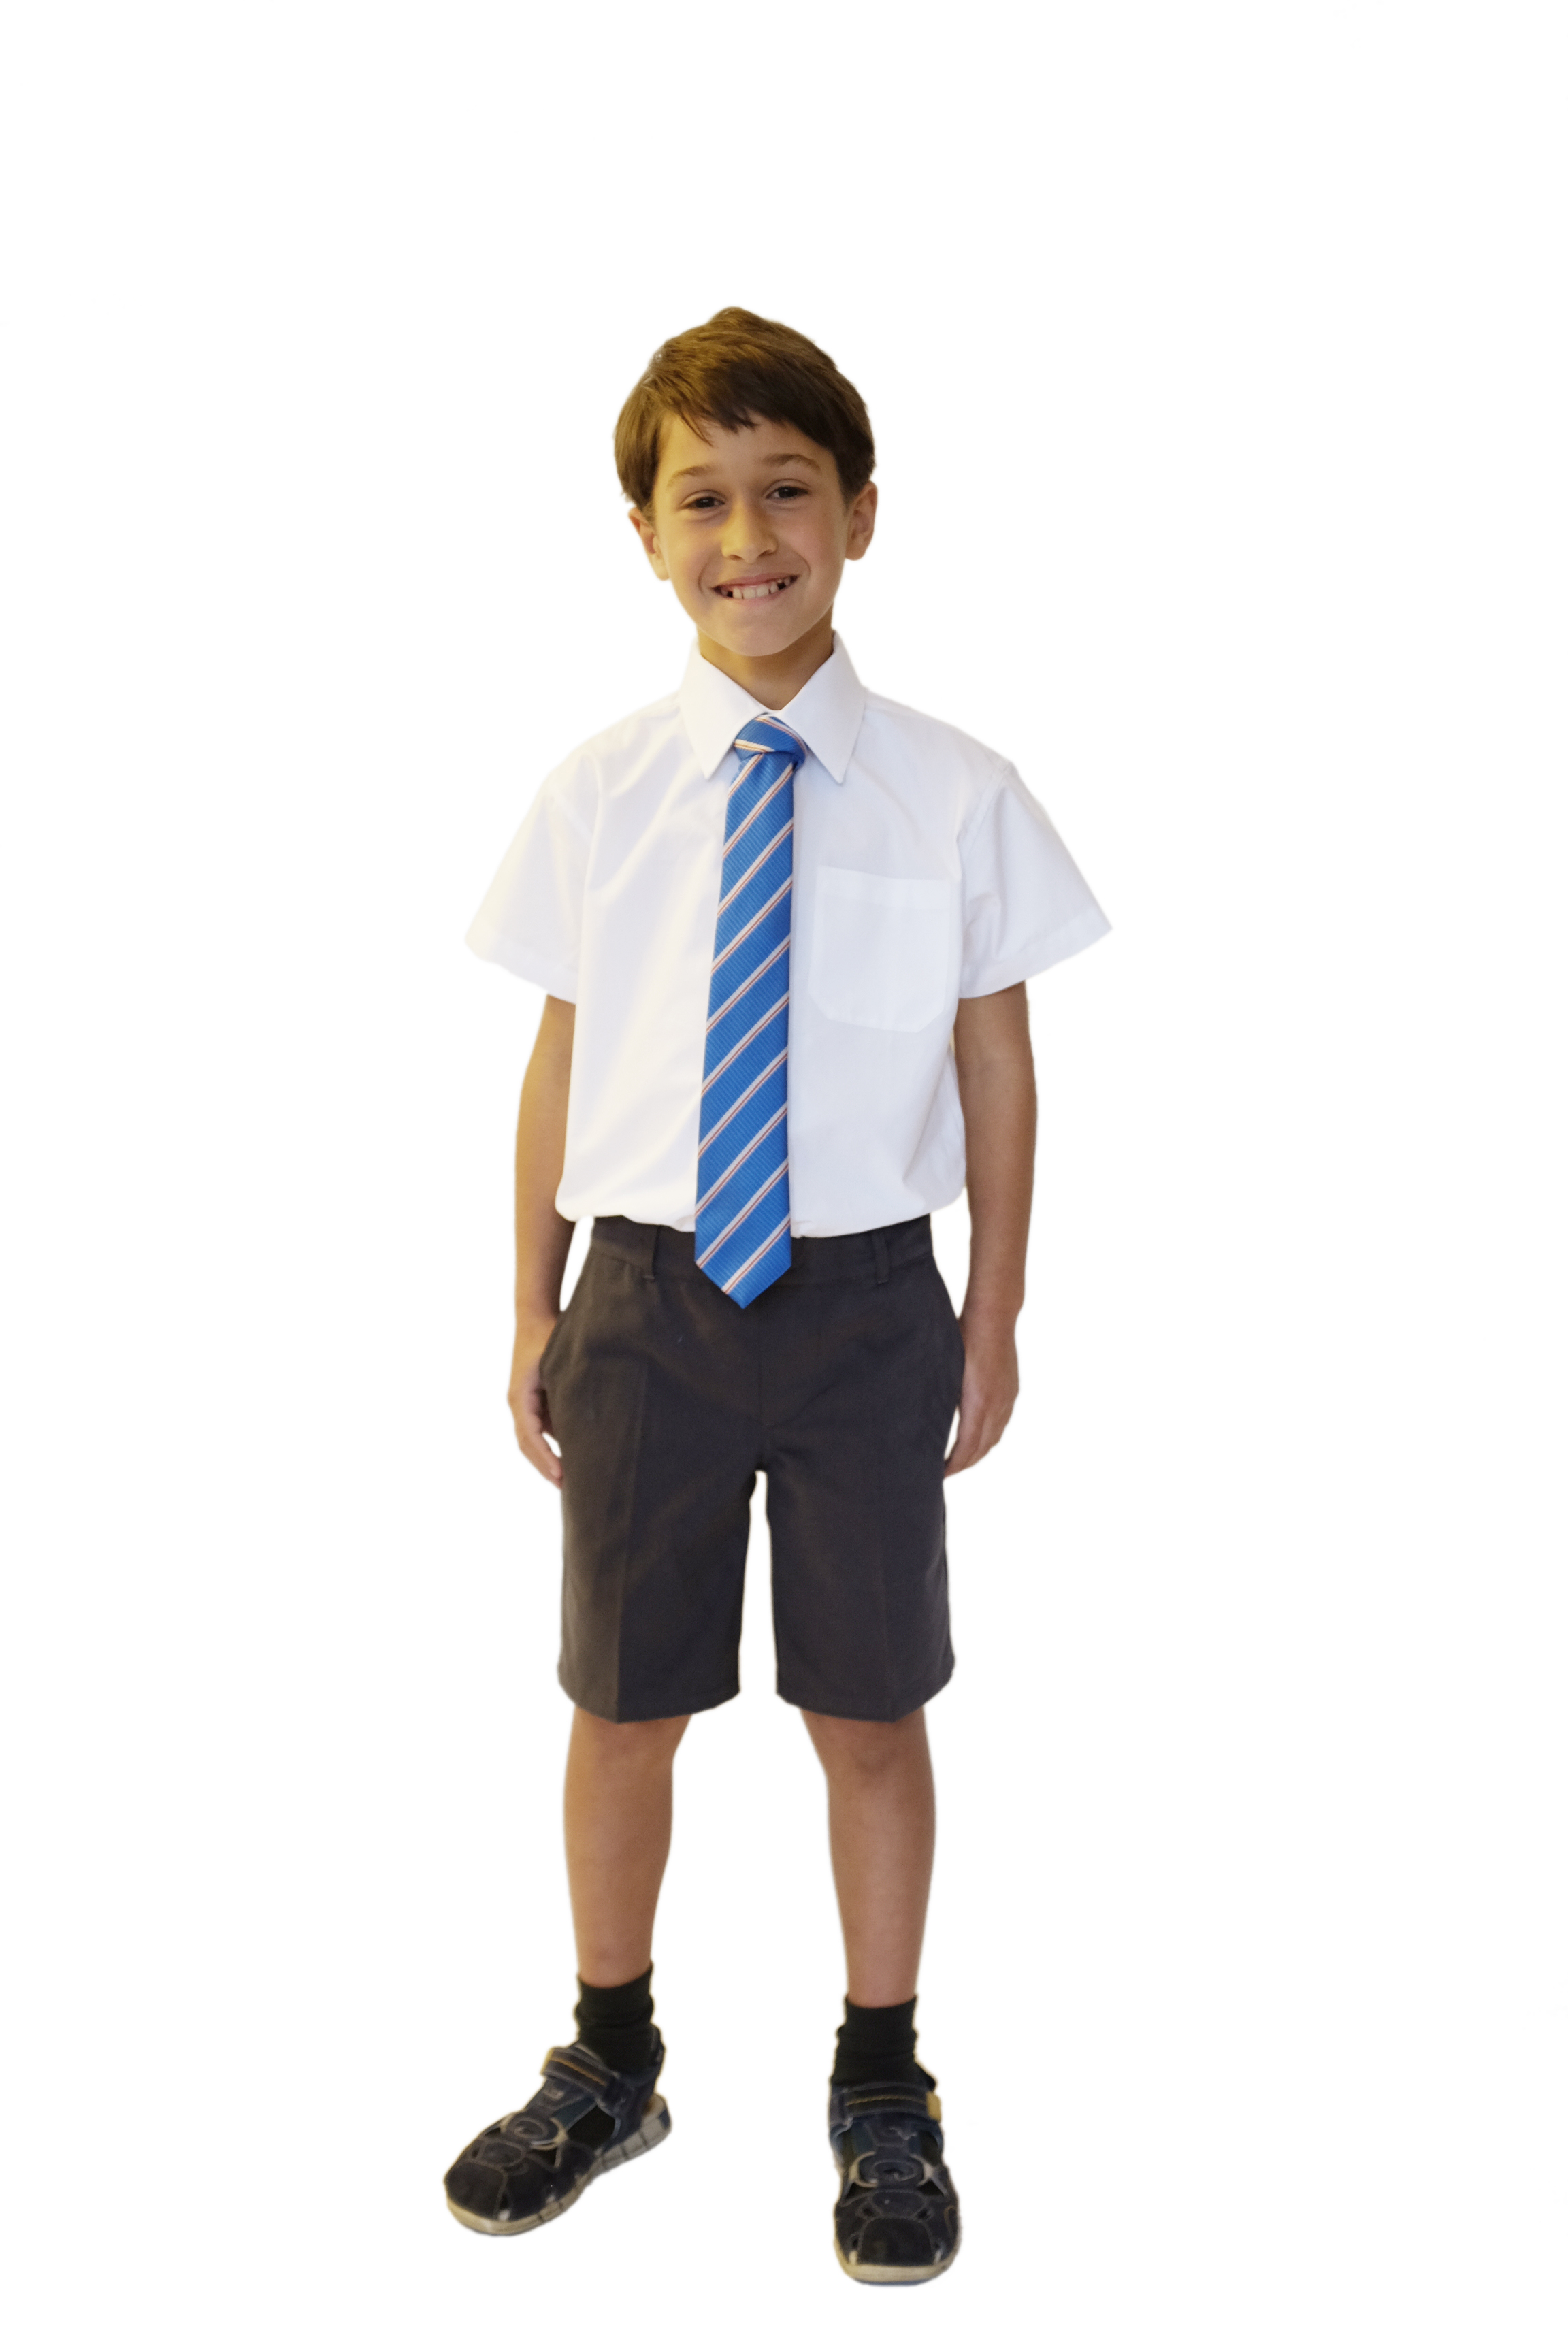 school uniforms are cheaper essay Against school dress codes and uniforms essays - the debate between school dress codes and uniforms the debate over school uniforms essay - school uniforms.